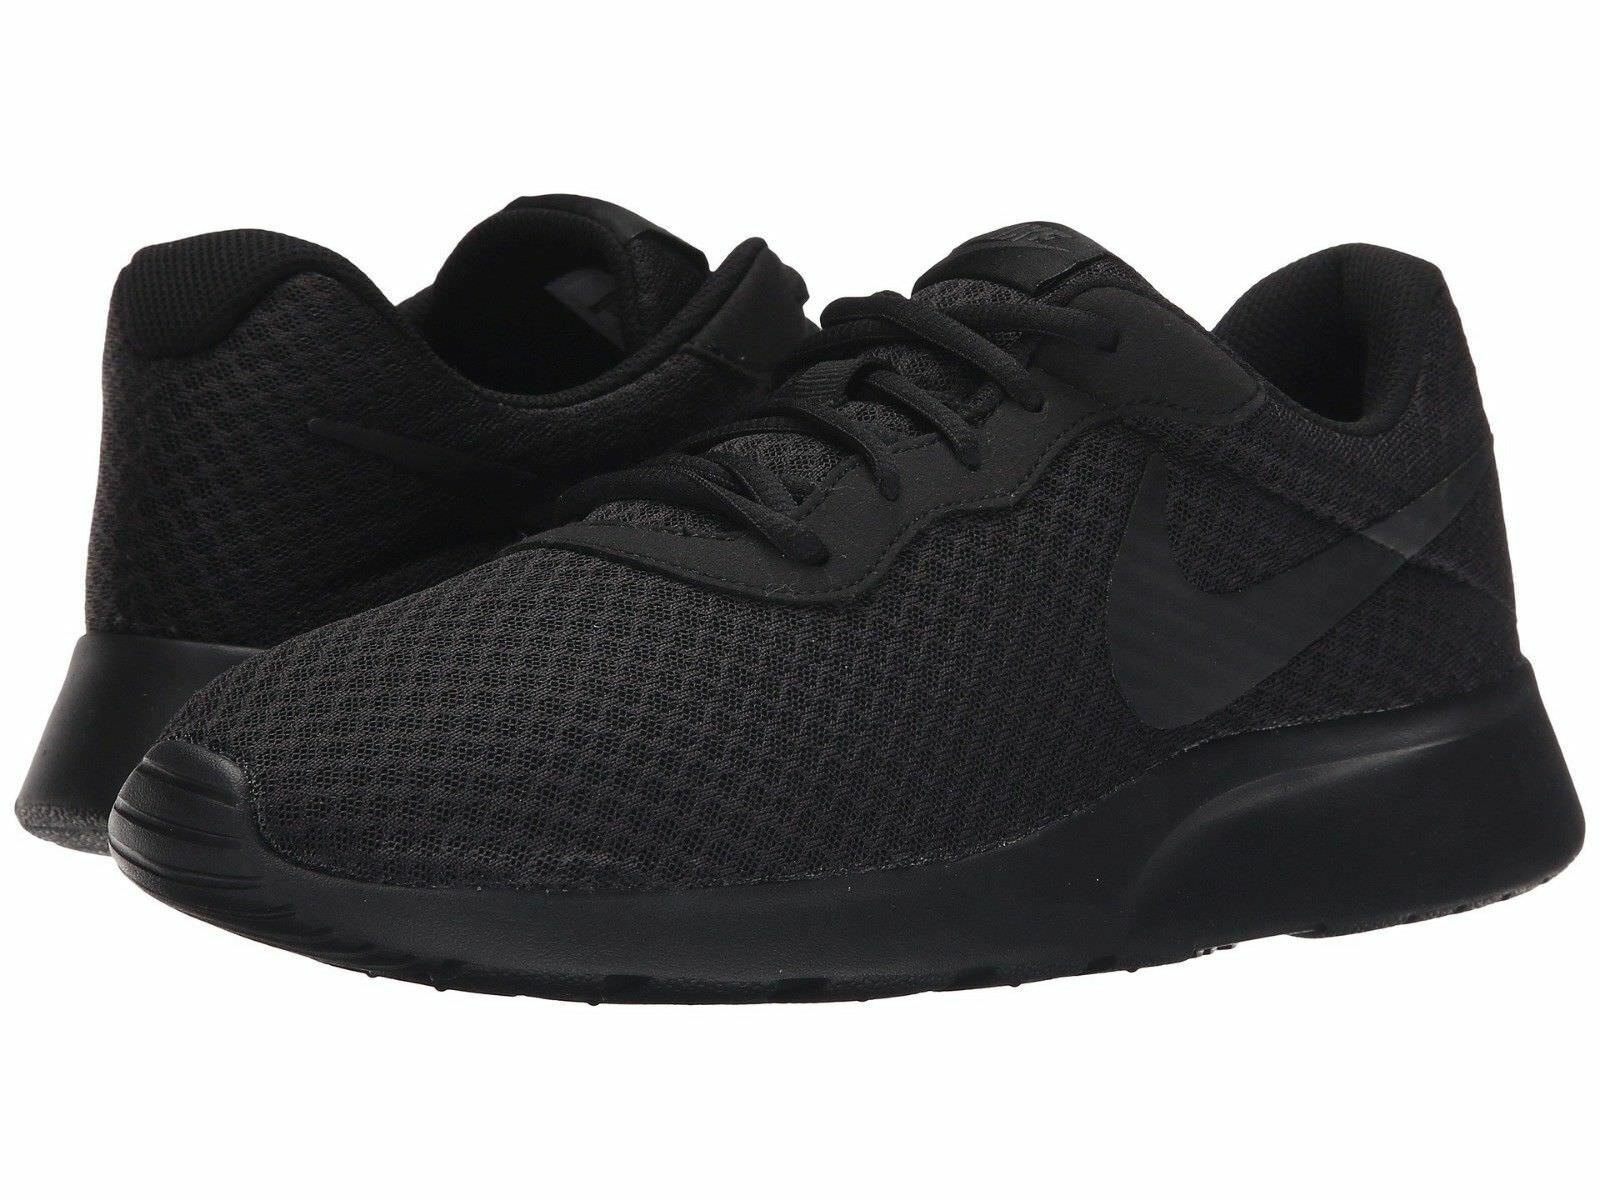 NIKE Tanjun 812654- 001 Black  Running Casual Shoes Men Comfortable